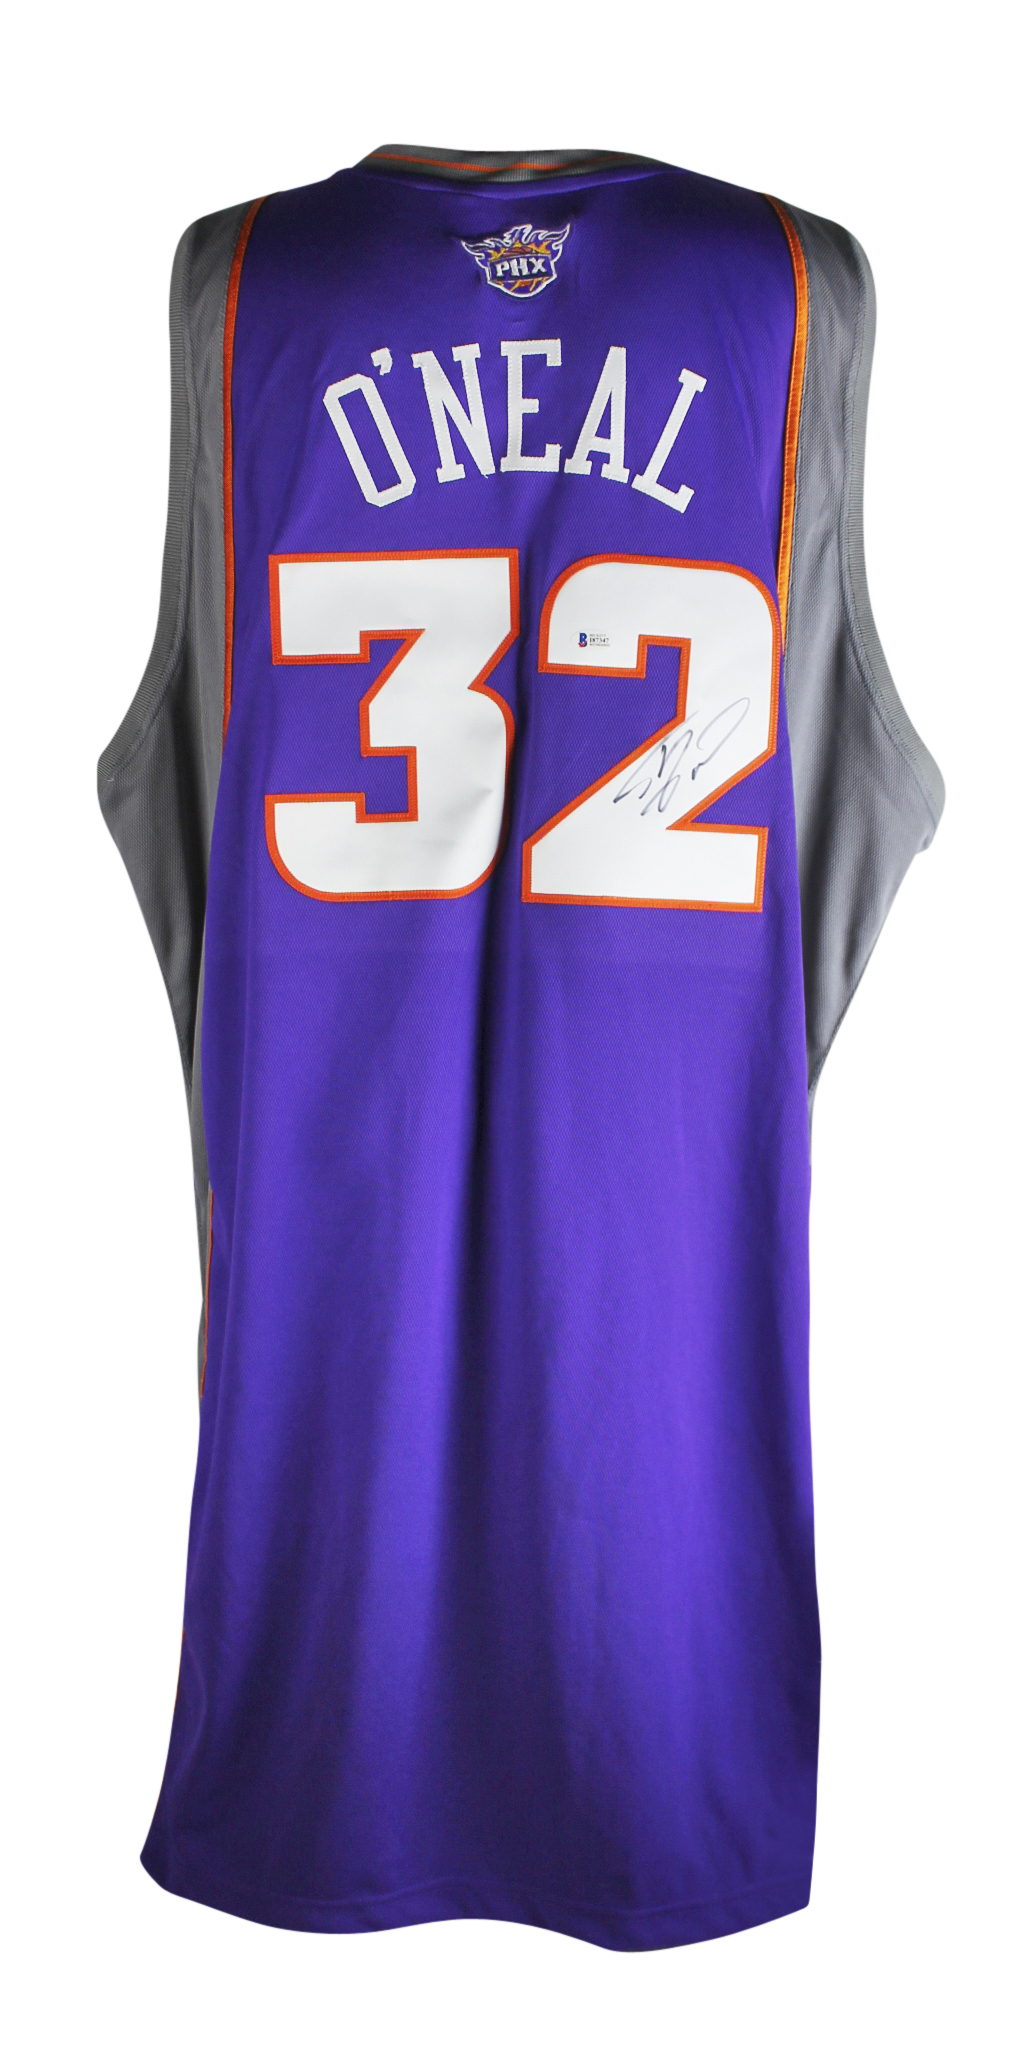 3cdd16505df Suns Shaquille O'Neal Signed 08-09 Game Used Adidas Size 60 +4 ...